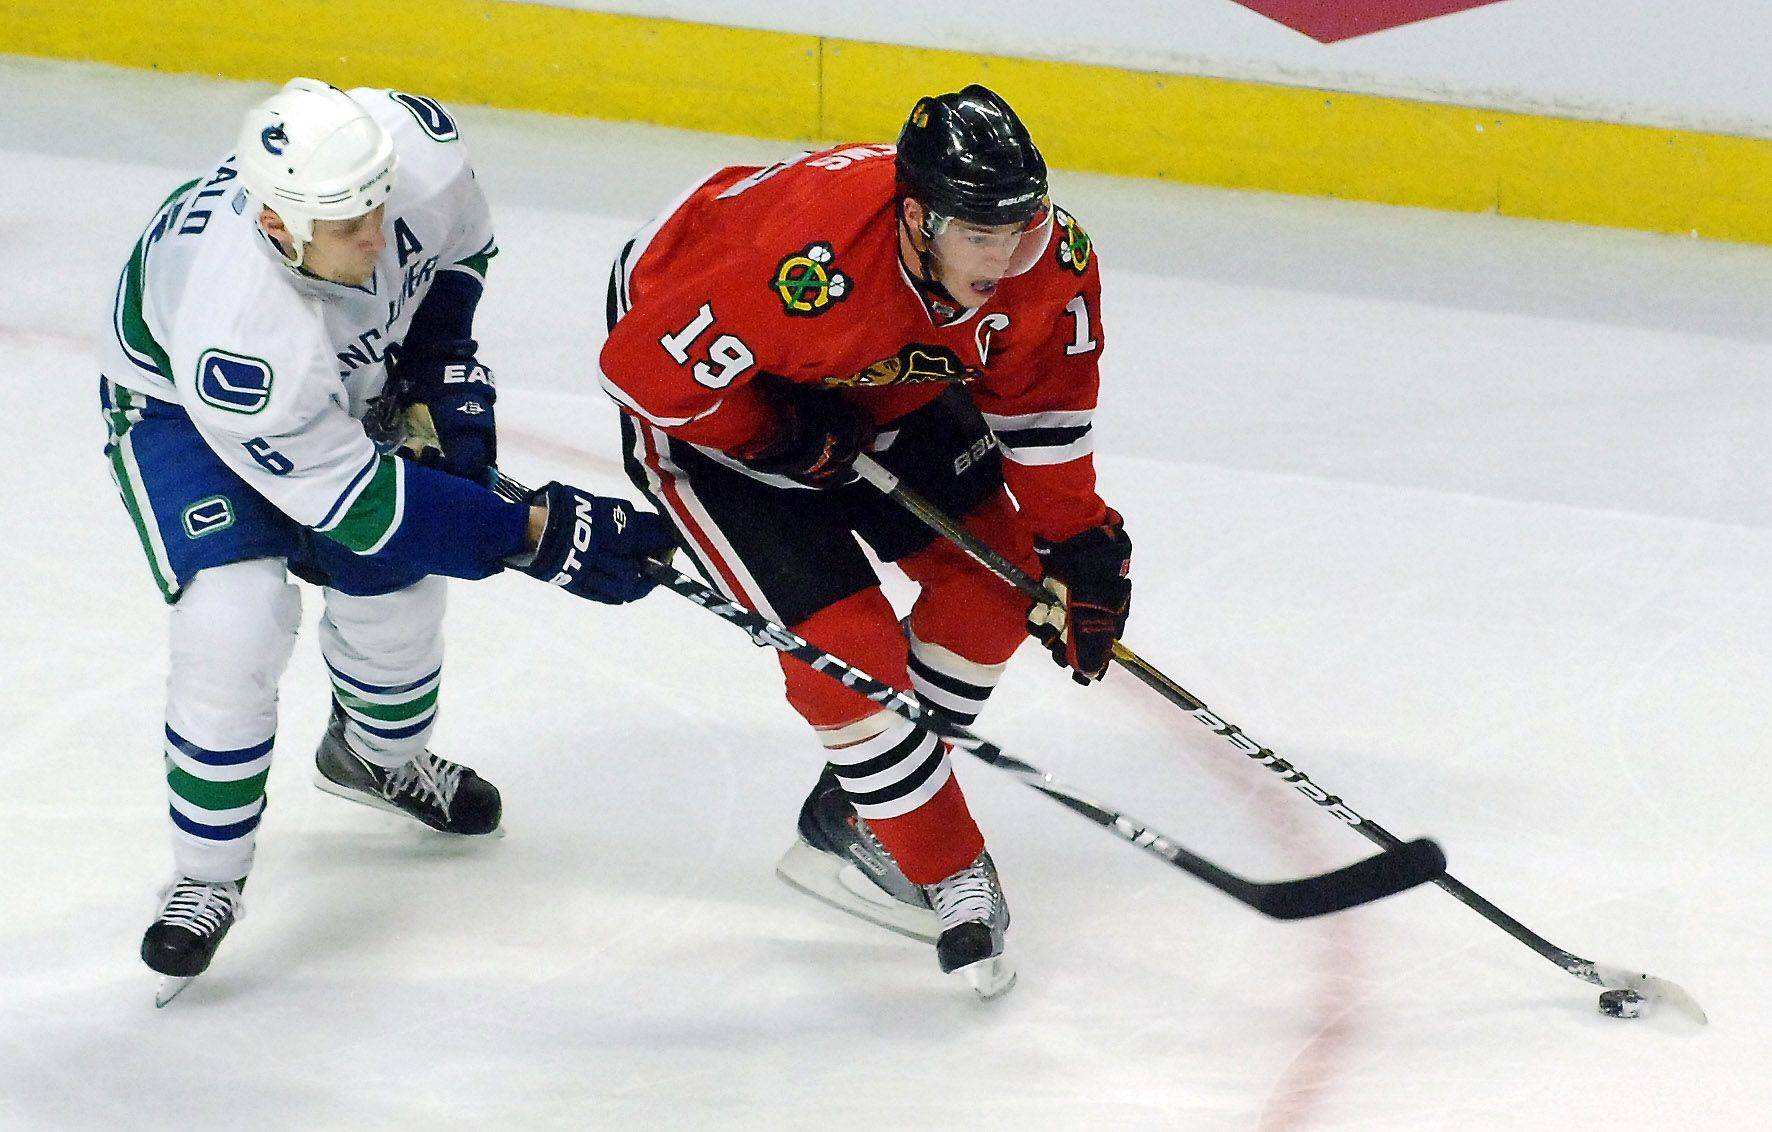 Chicago Blackhawks center Jonathan Toews (19) tries to find some room to skate past Vancouver Canucks defenseman Sami Salo (6) in the third period.